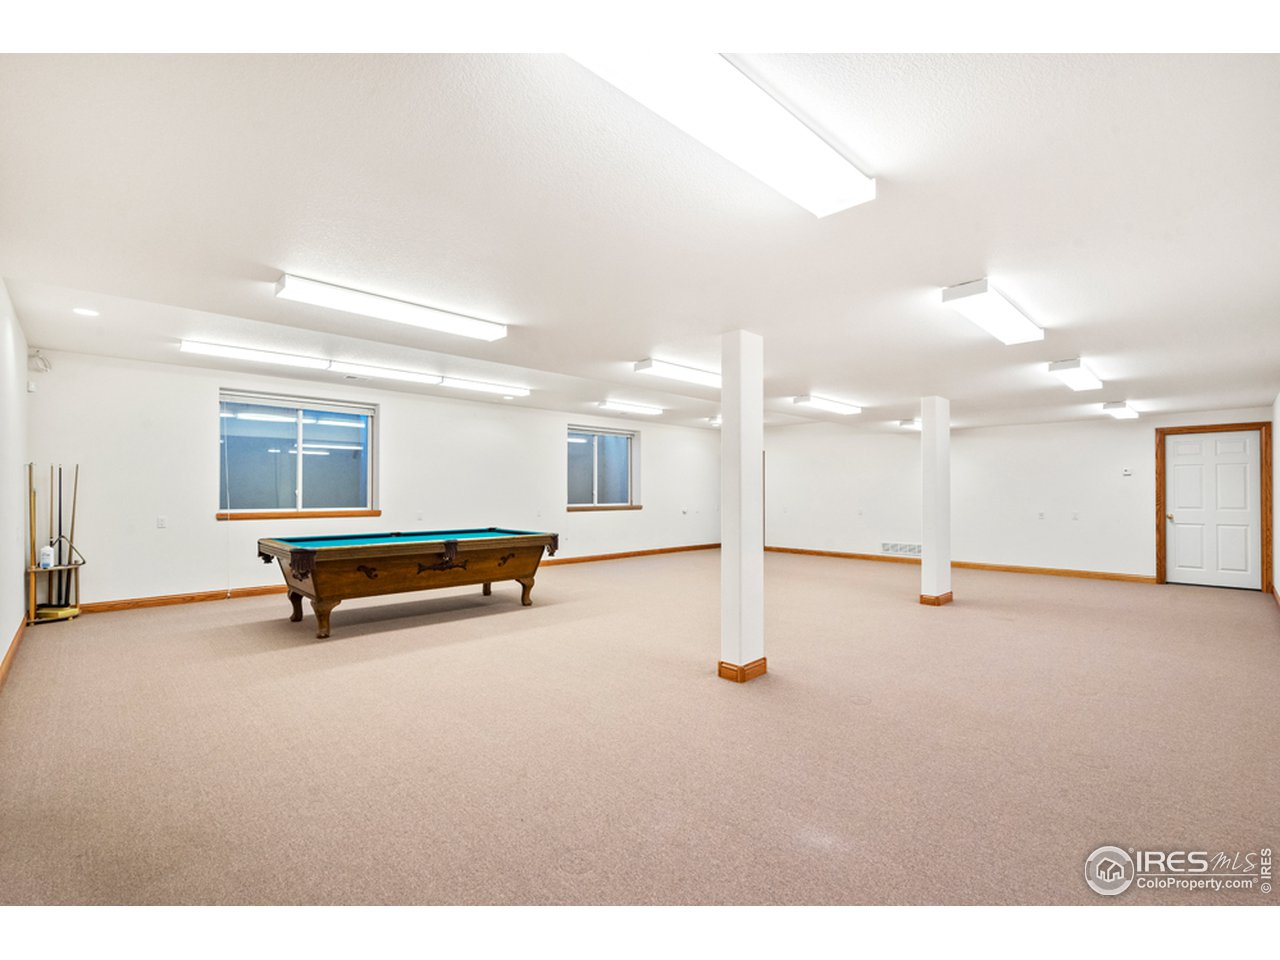 Large Rec Room in Basement